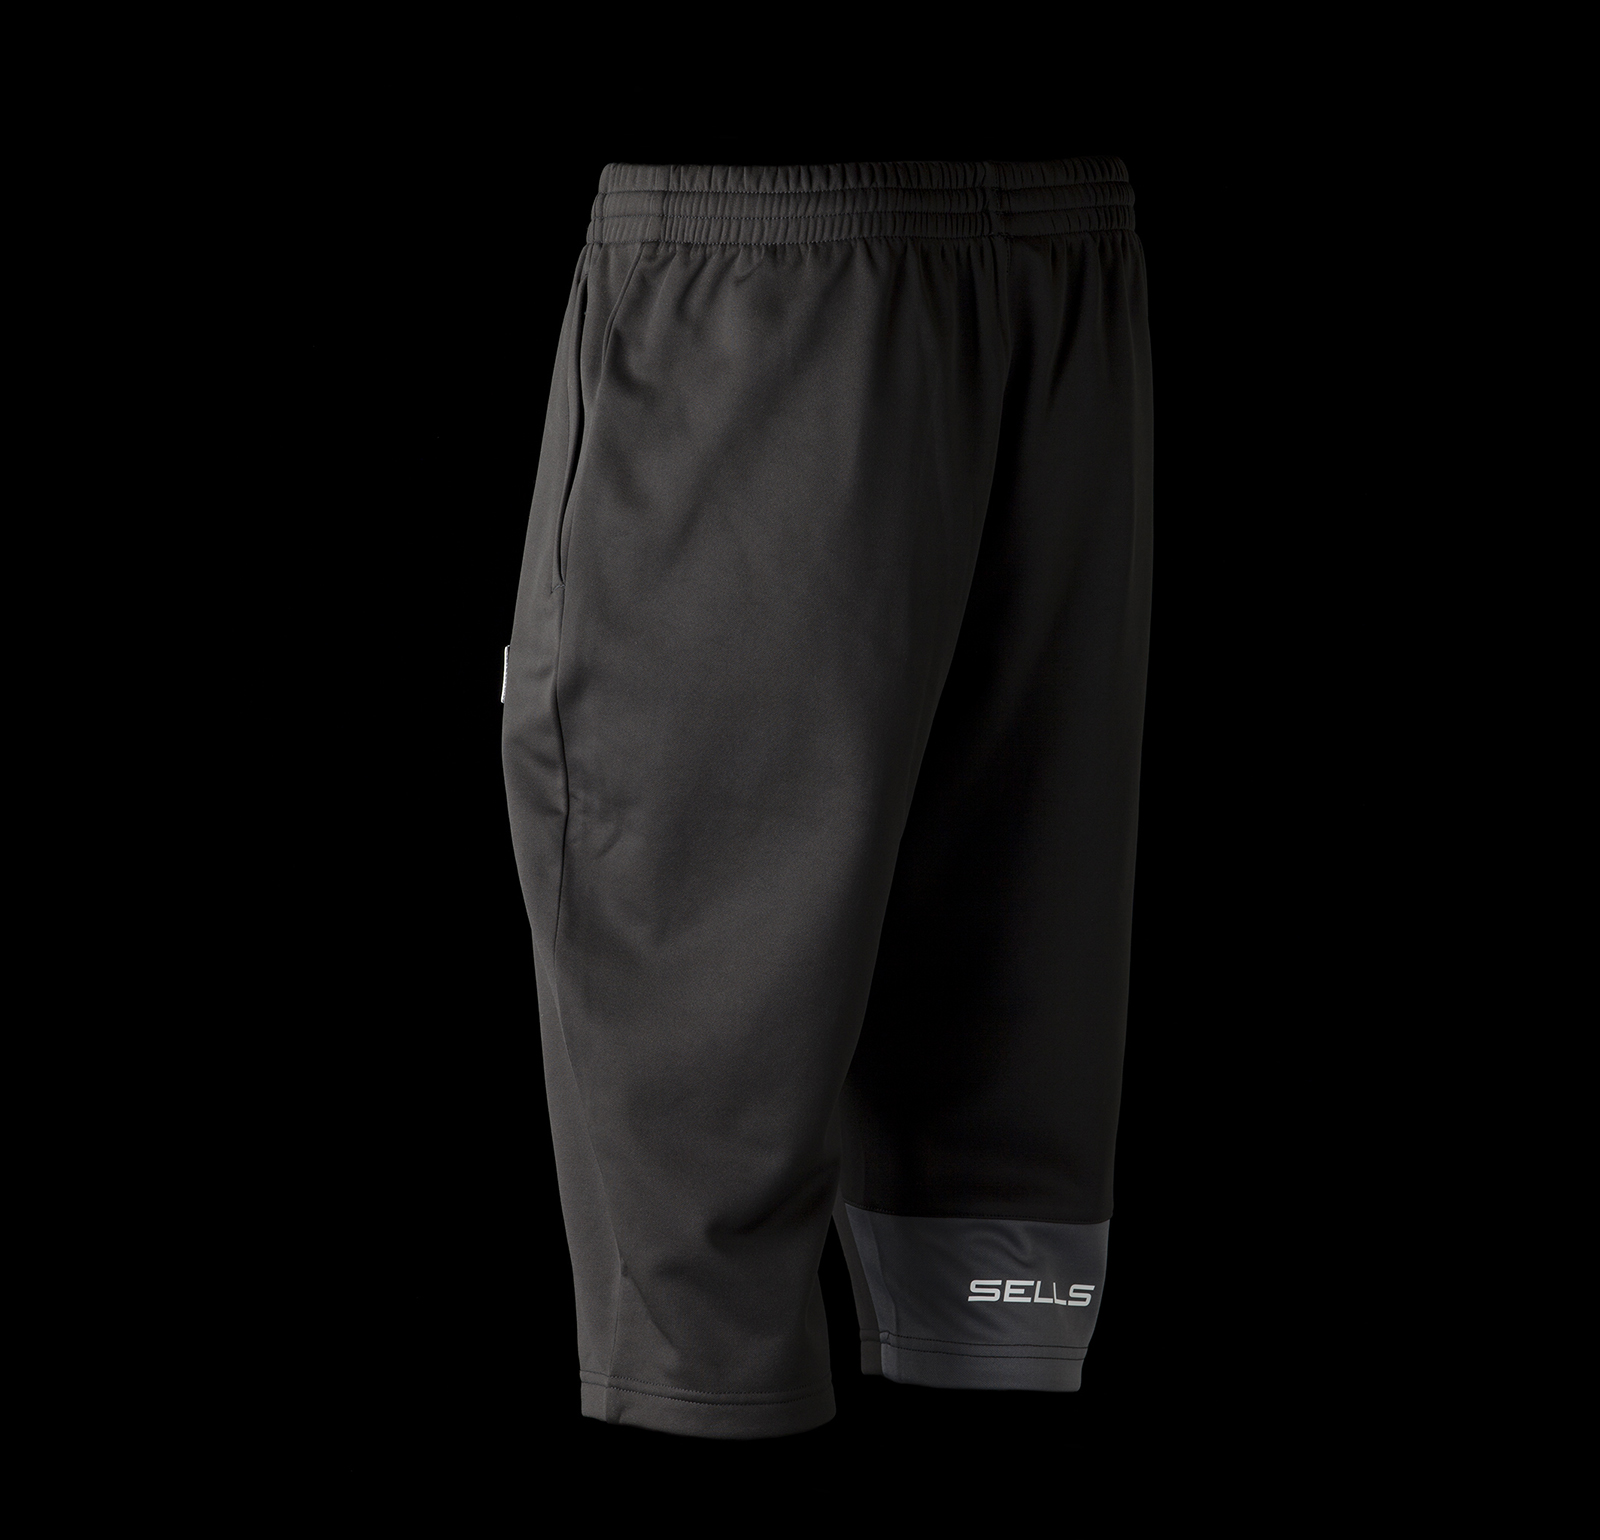 excel-3-4-pant-promo-28